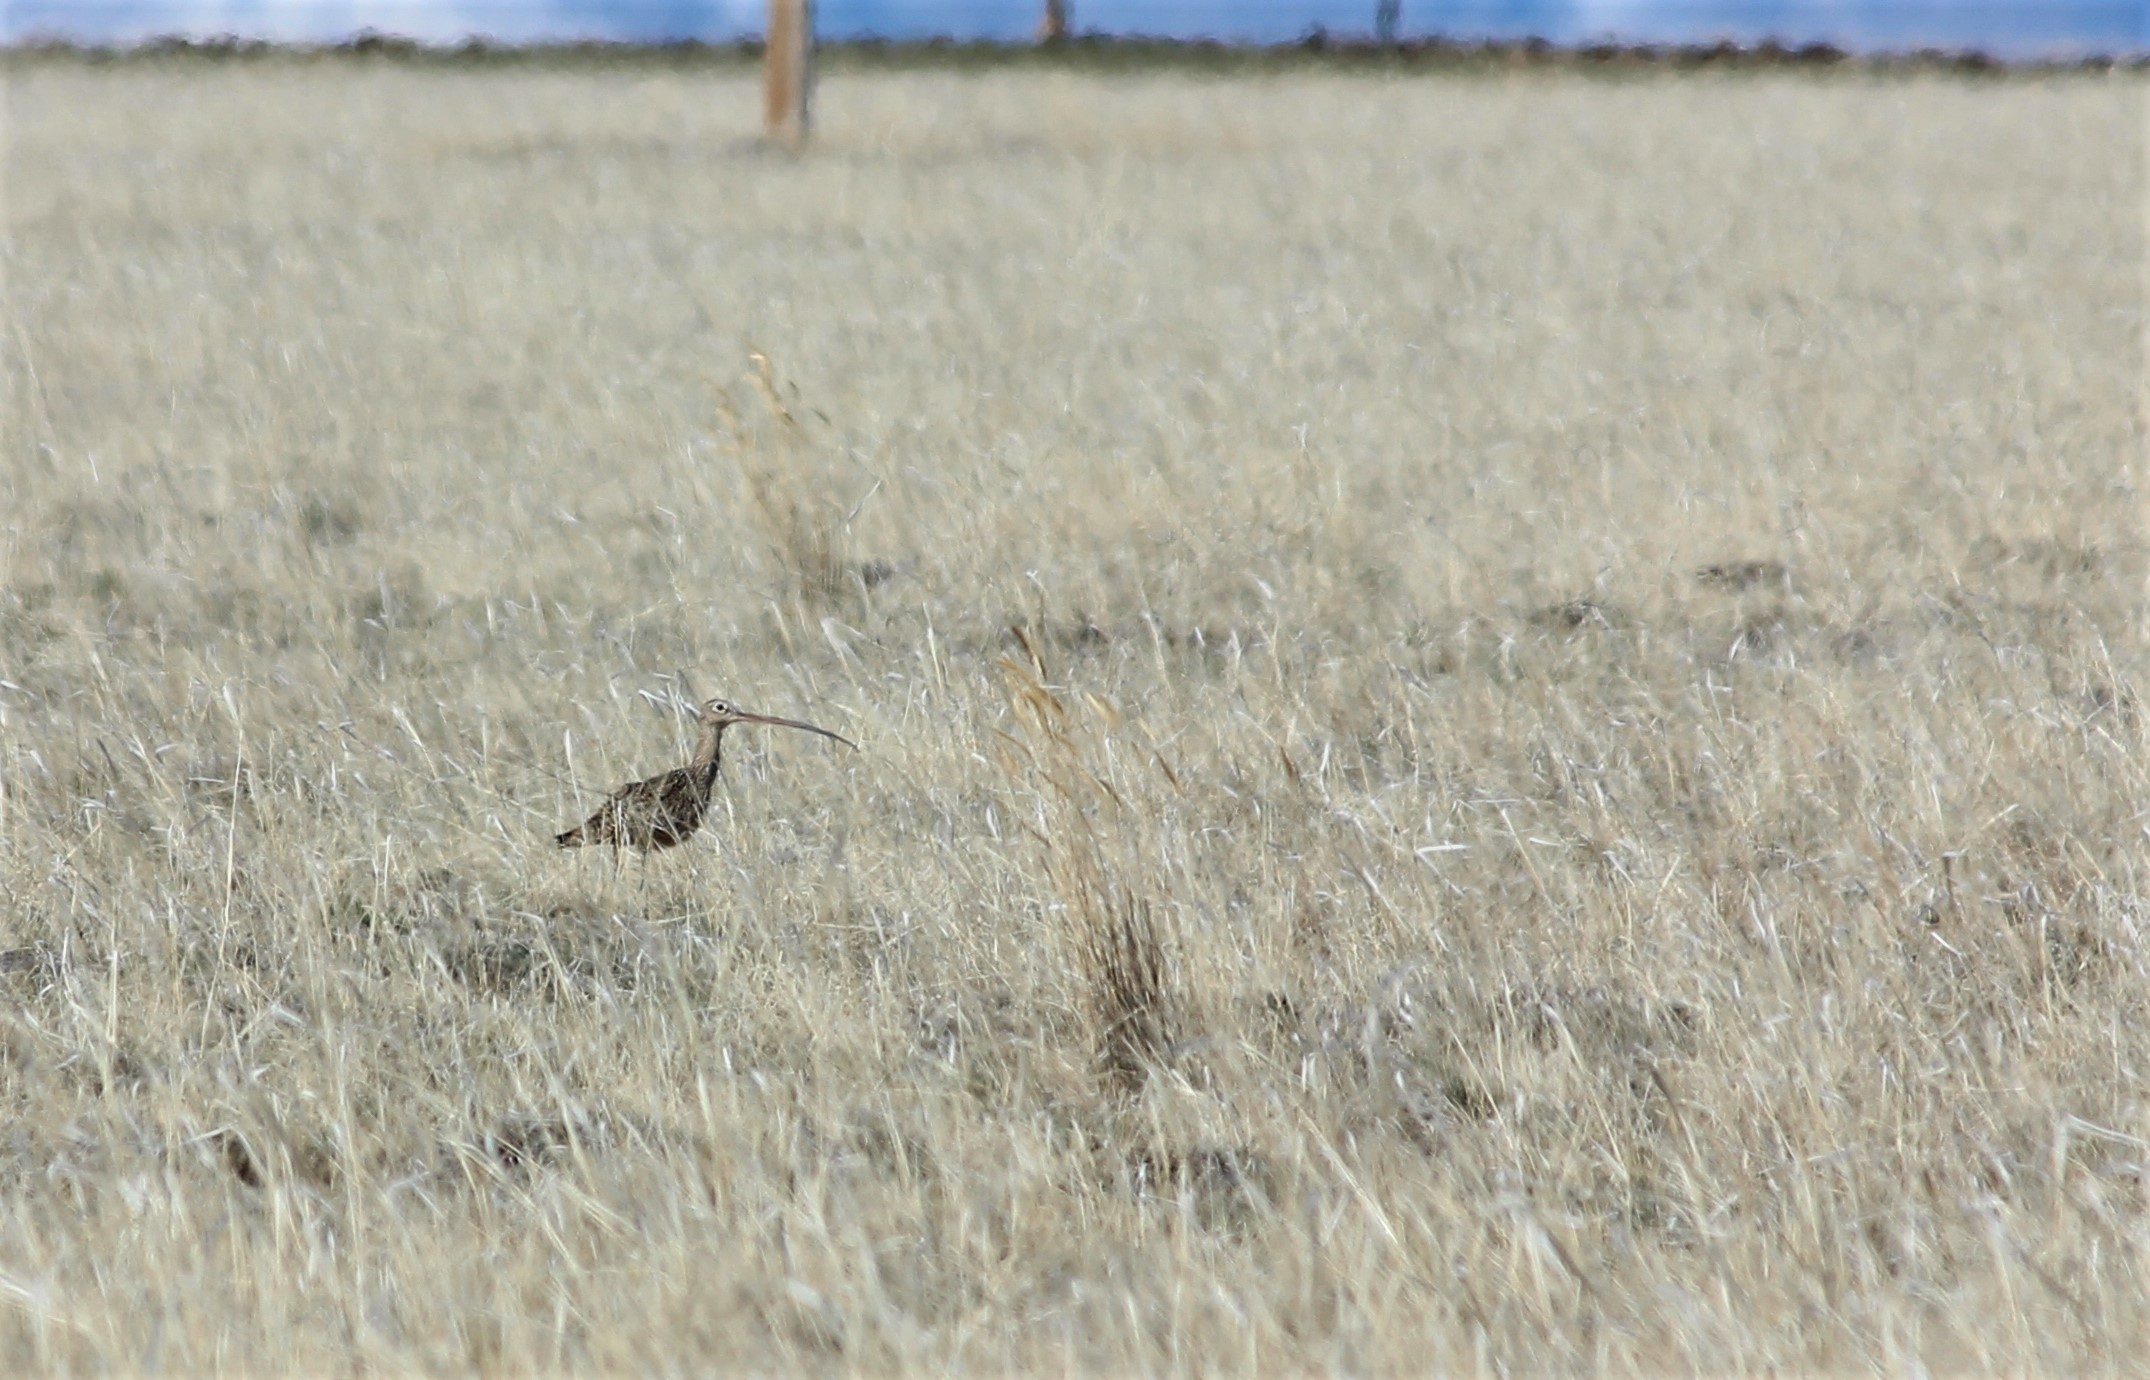 a long billed curlew walking through a grassy field